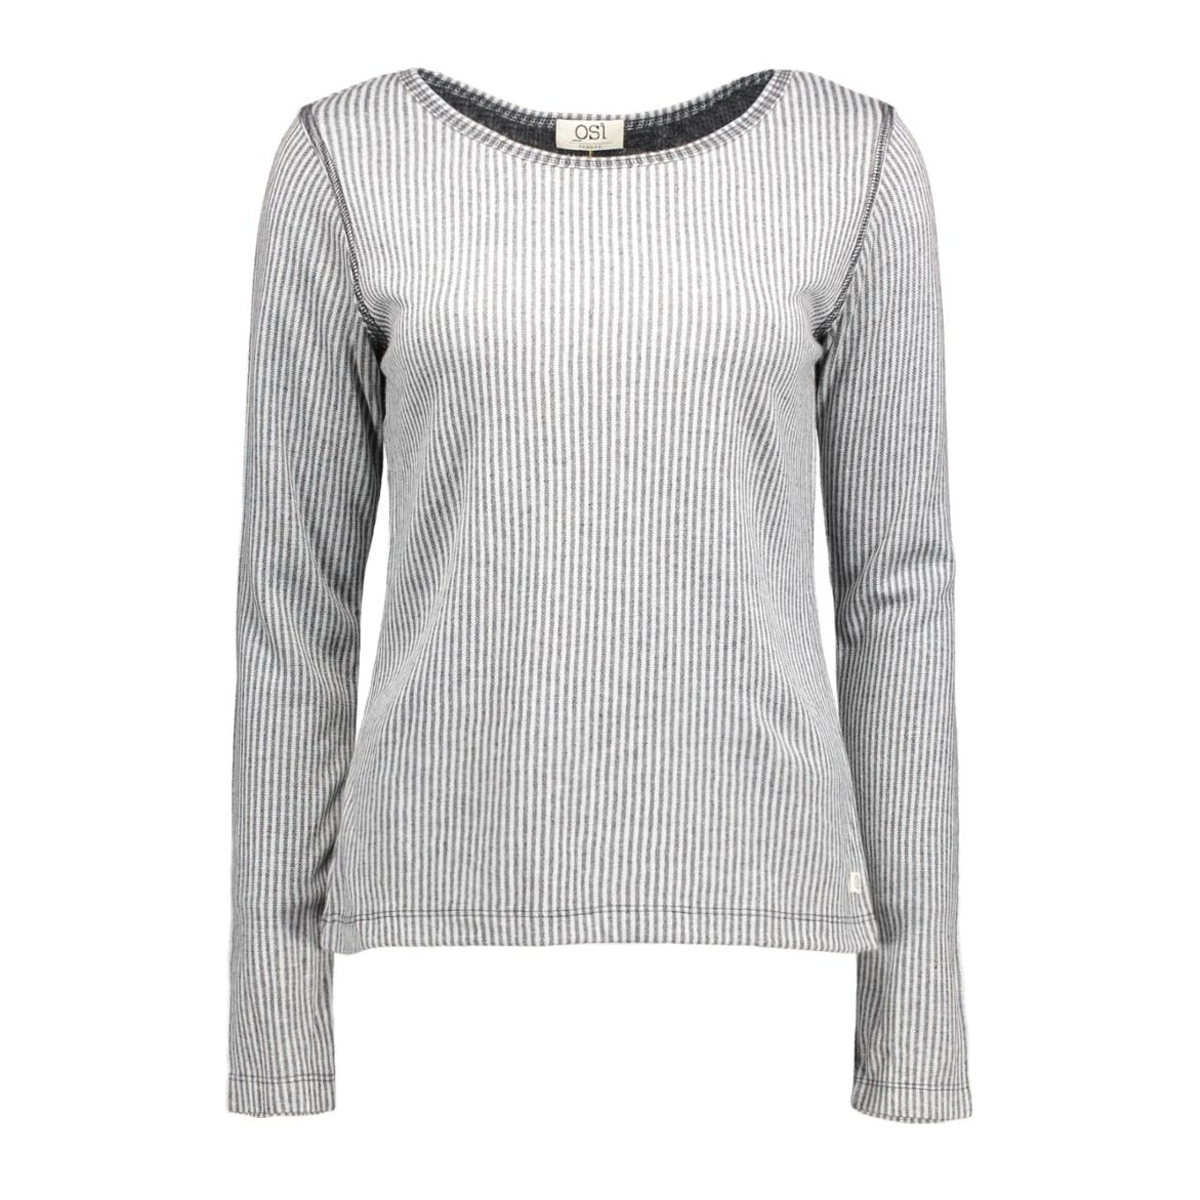 megan stripe osi femmes t-shirt dark grey